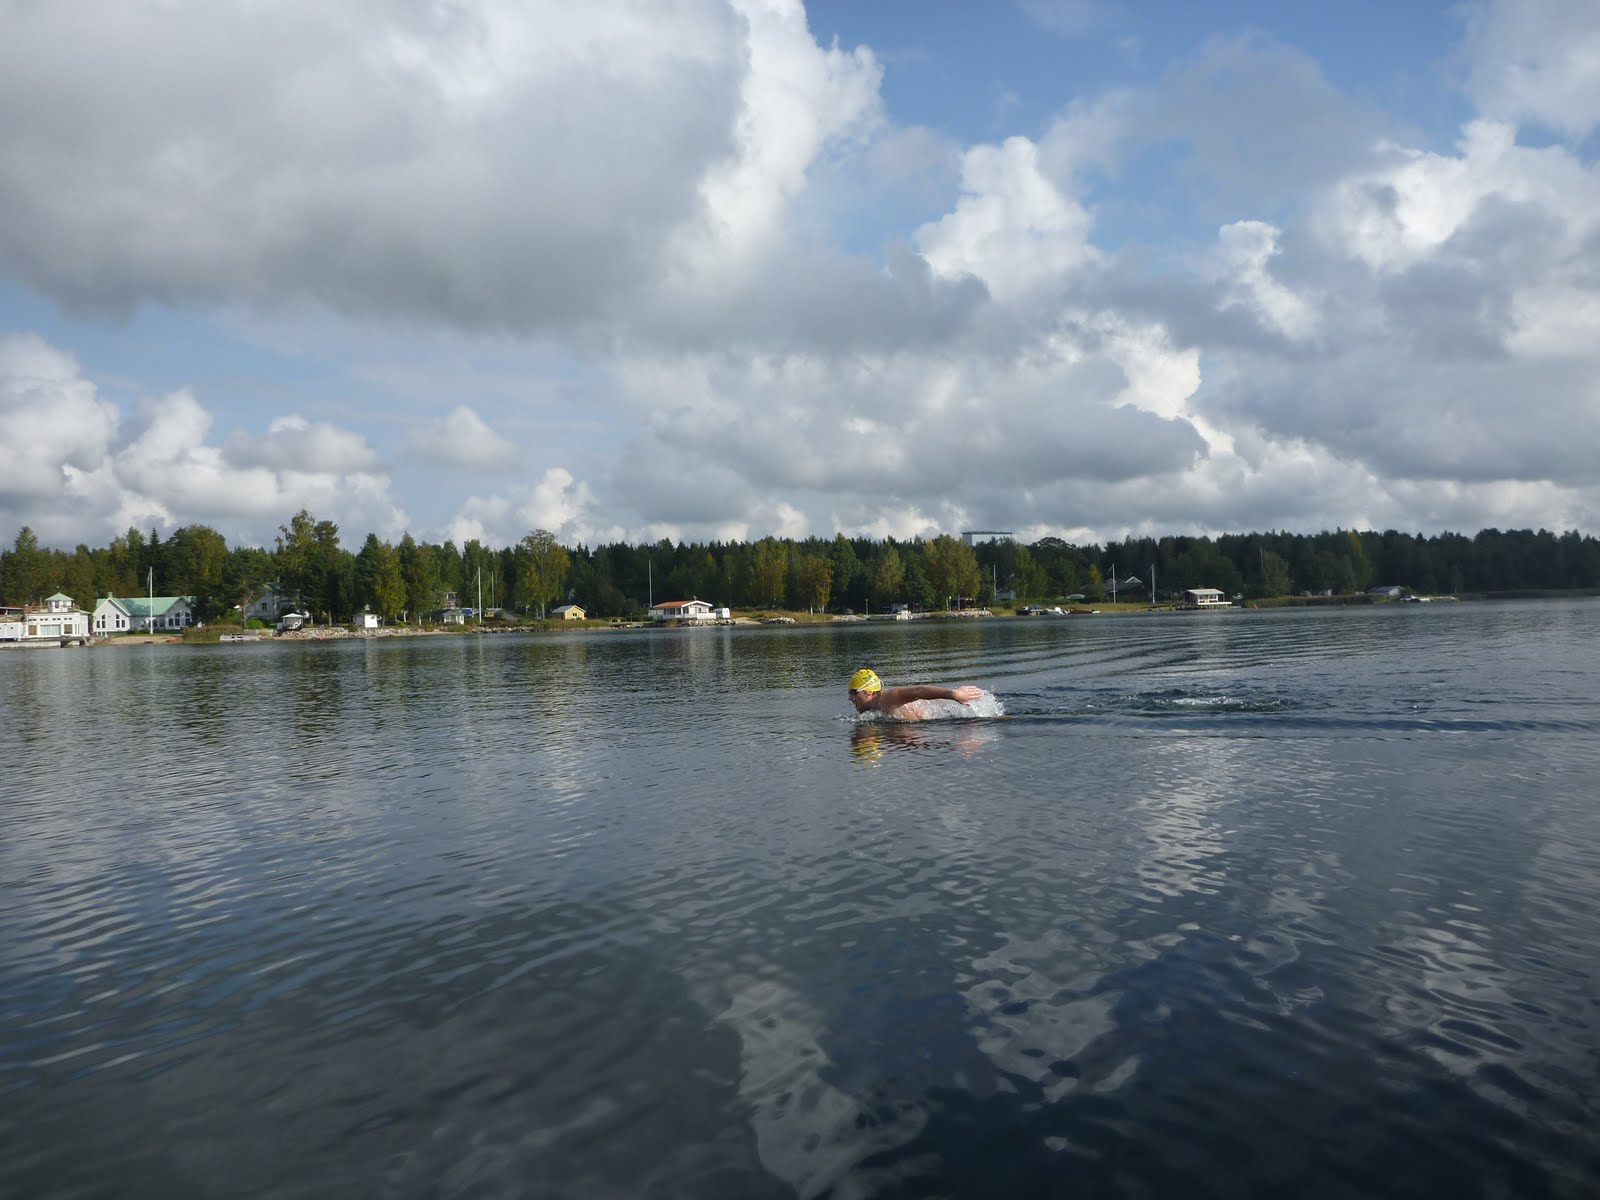 Frenchman In Sweden For A British Cold-water Swim - WOWSA